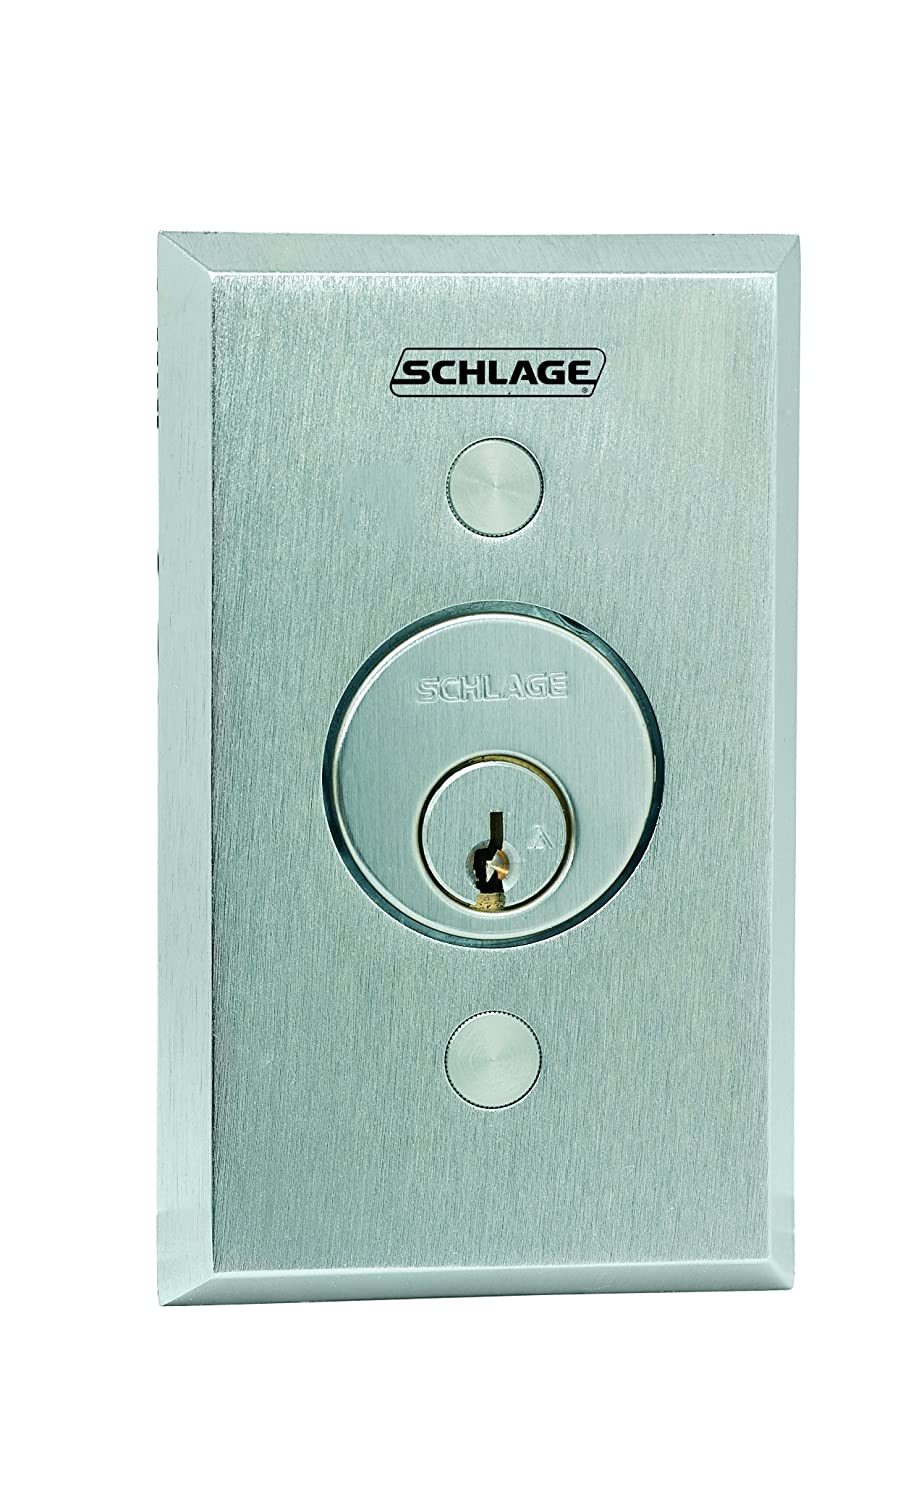 Image of Schlage Electronics 653-05 Keyswitch, SPDT Momentary Single Direction, Satin Chrome Finish, Less Cylinder